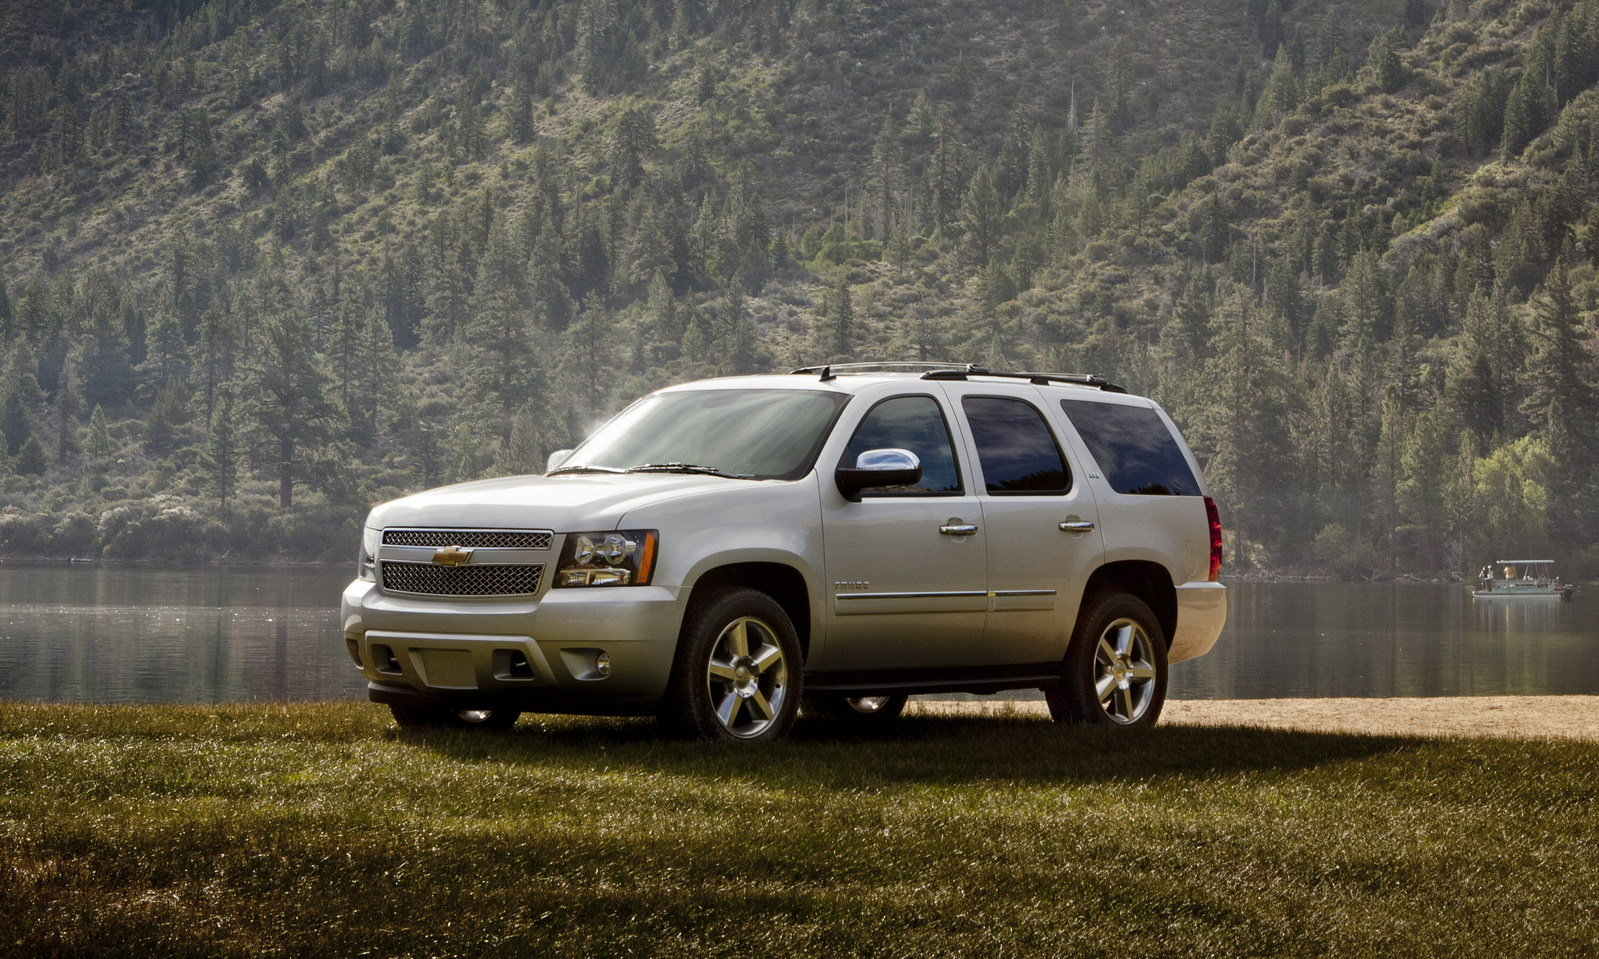 Tahoe 2004 chevy tahoe towing capacity : 2014 Chevrolet Tahoe Review - Top Speed